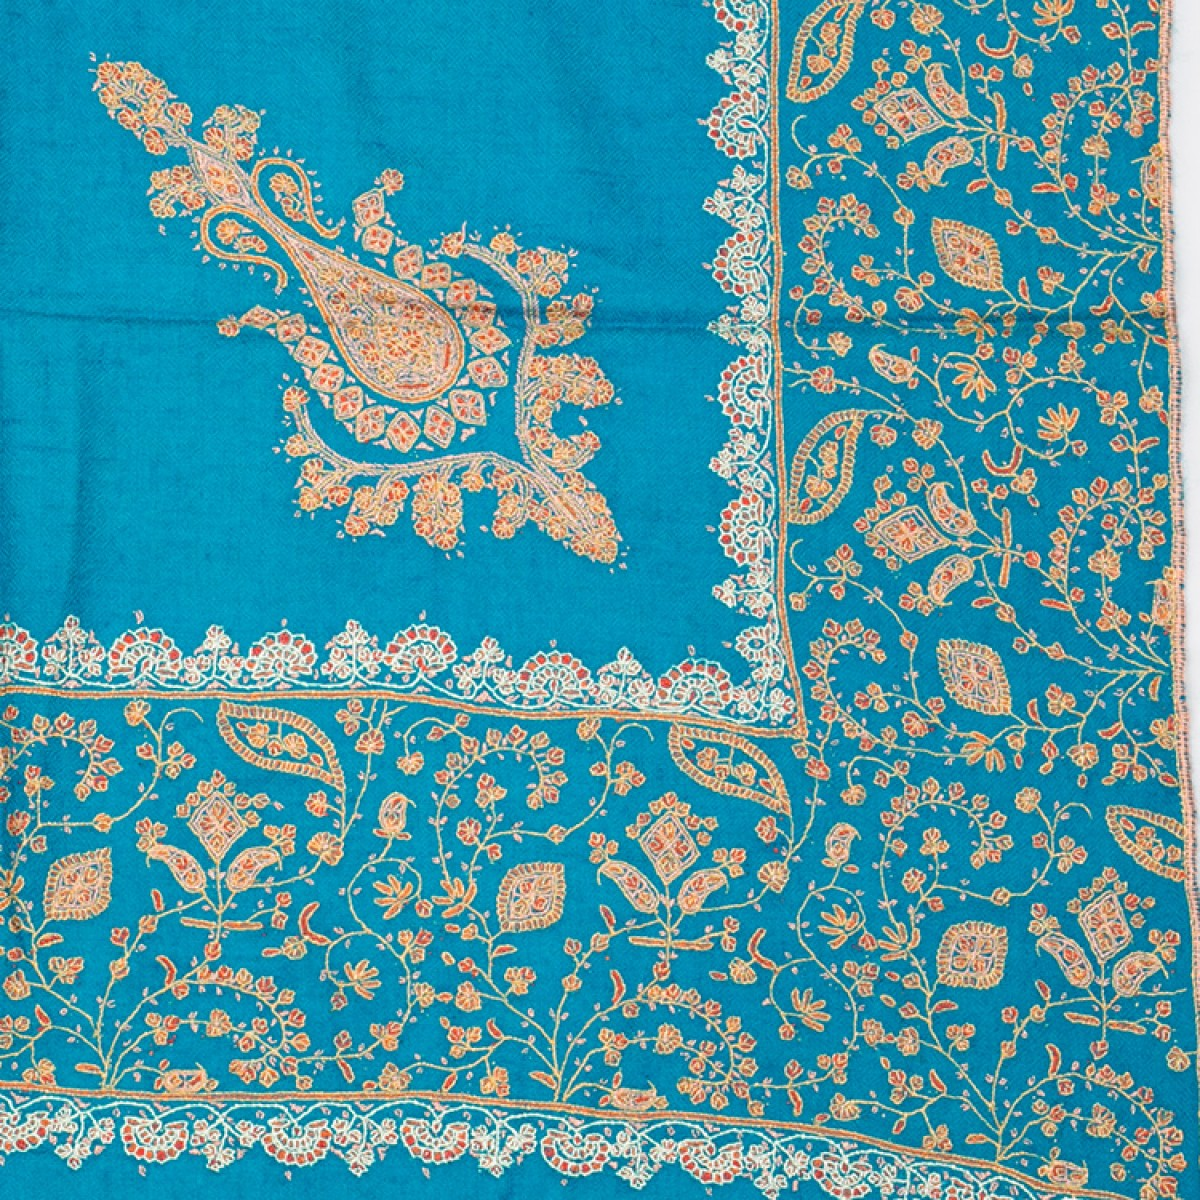 Embroidered Pashmina Shawl - Teal